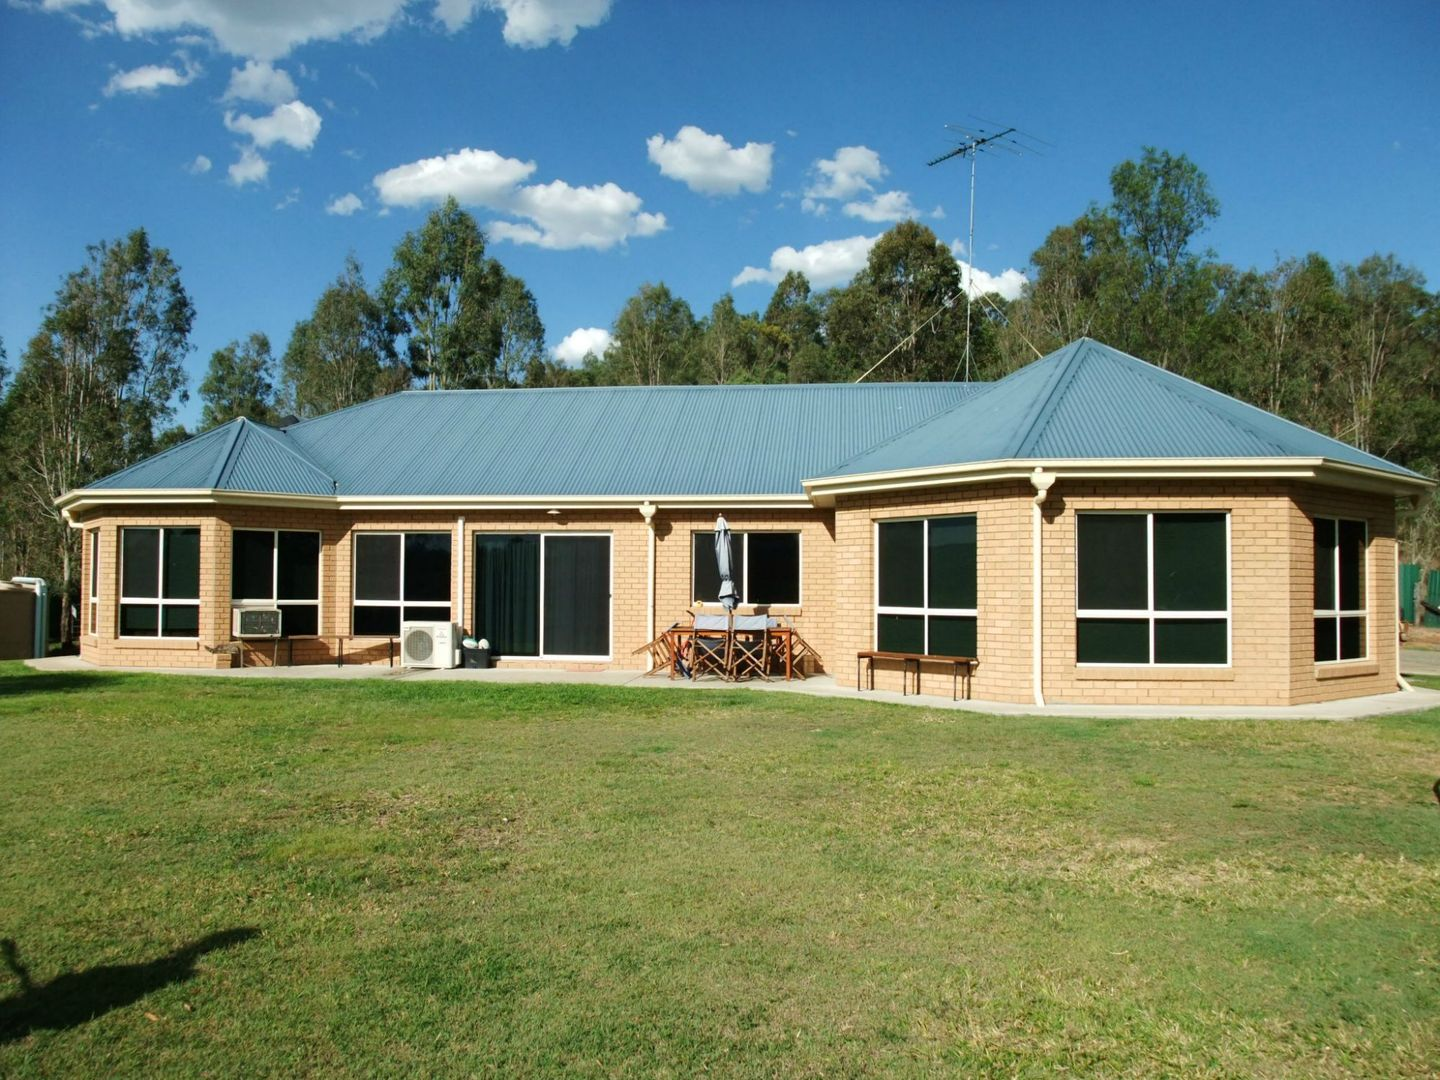 819 Boonah Rathdowney Road, Wallaces Creek QLD 4310, Image 0